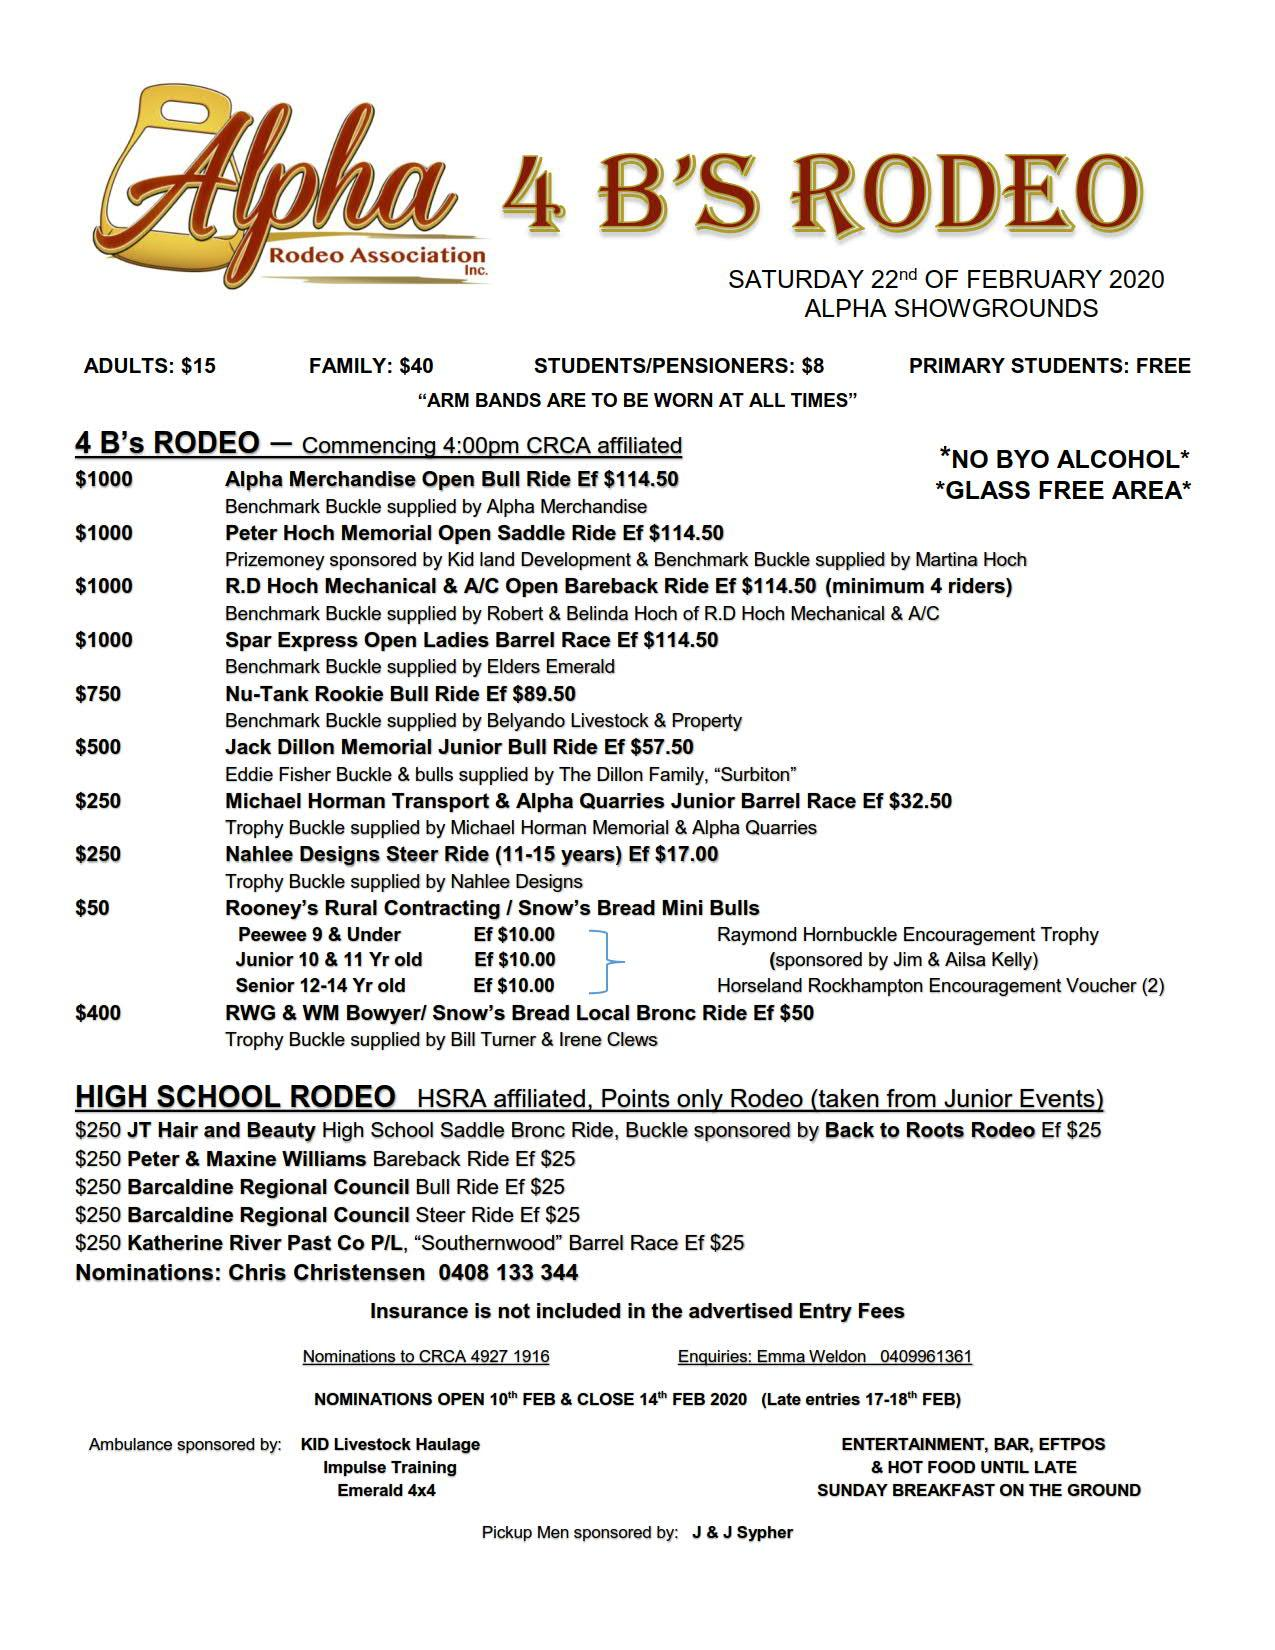 Alpha Rodeo Association - 4 B's Rodeo, Saturday 22 February 2020